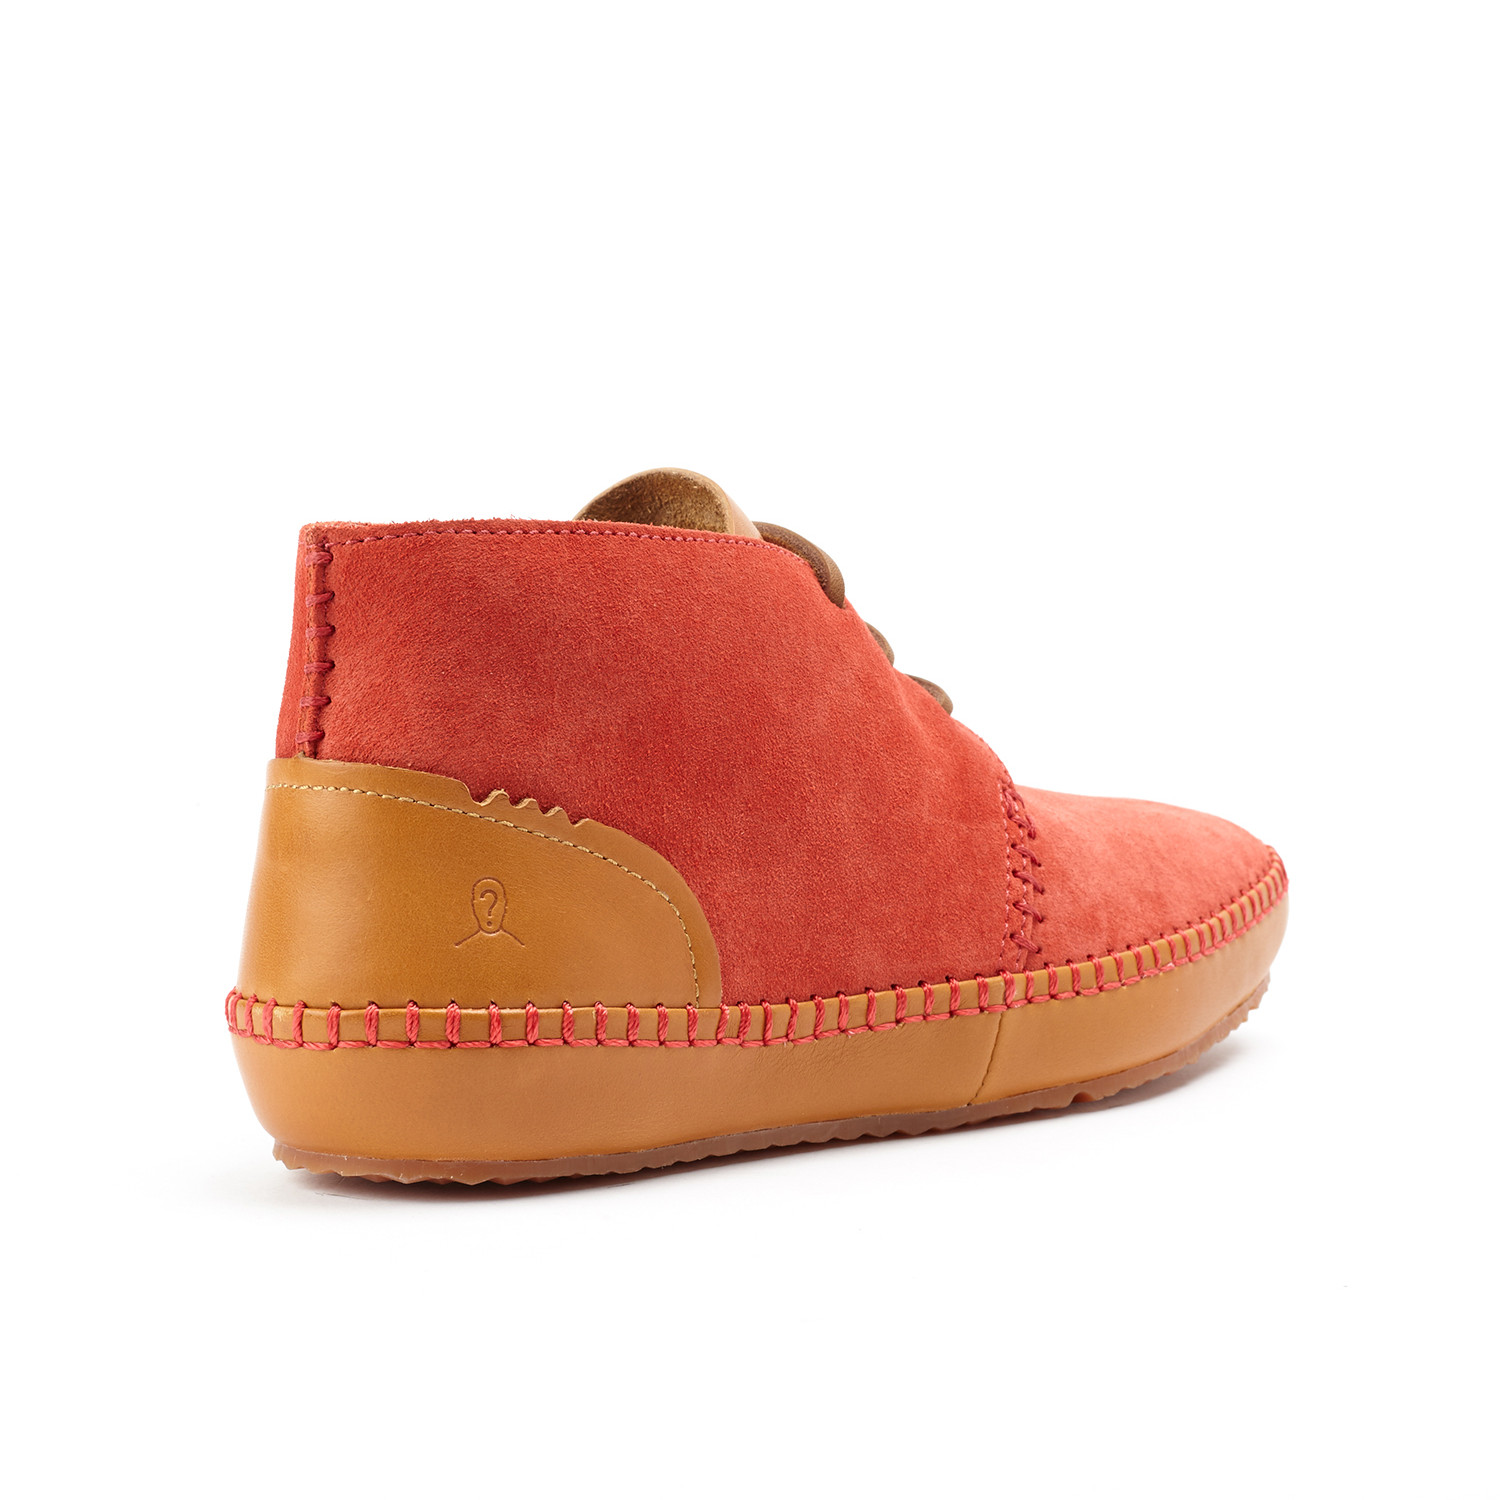 moccasin dating The most esteemed entity to be is 'you' there are far worse things than being lonely playing dating ugg® 'olsen' moccasin slipper (men) games,.